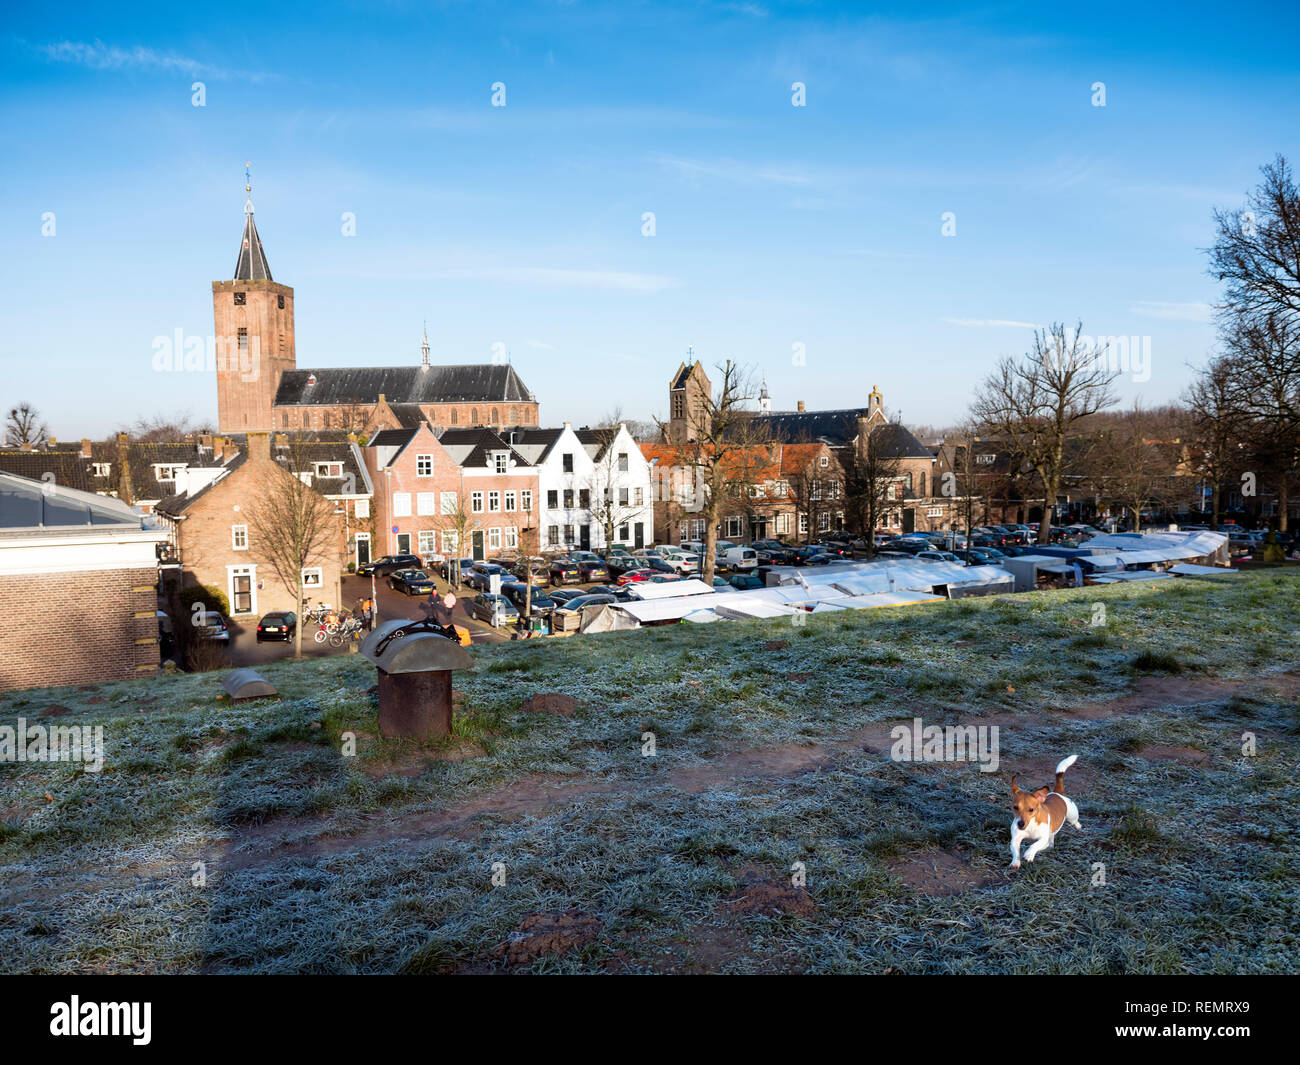 large church of naarden vesting in the netherlands with dog on the foreground on sunny winter day - Stock Image